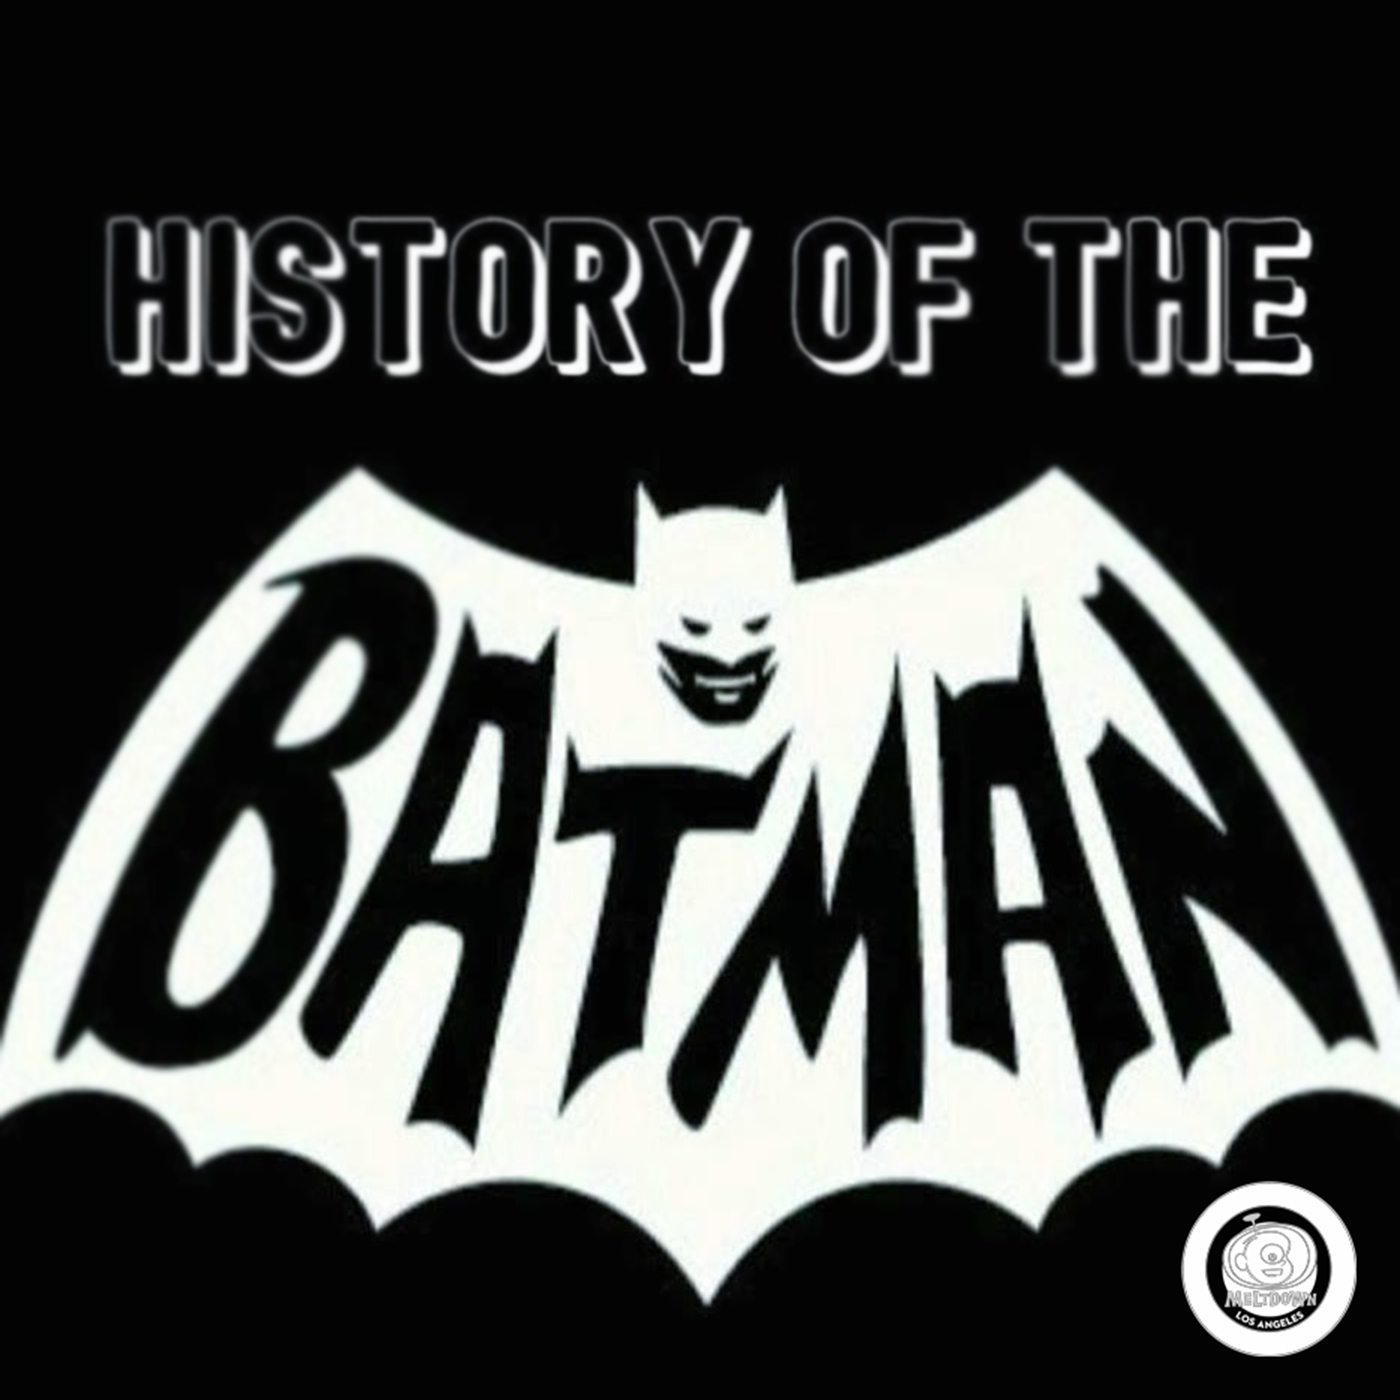 Meltdown Presents: History of The Batman with Londyn!